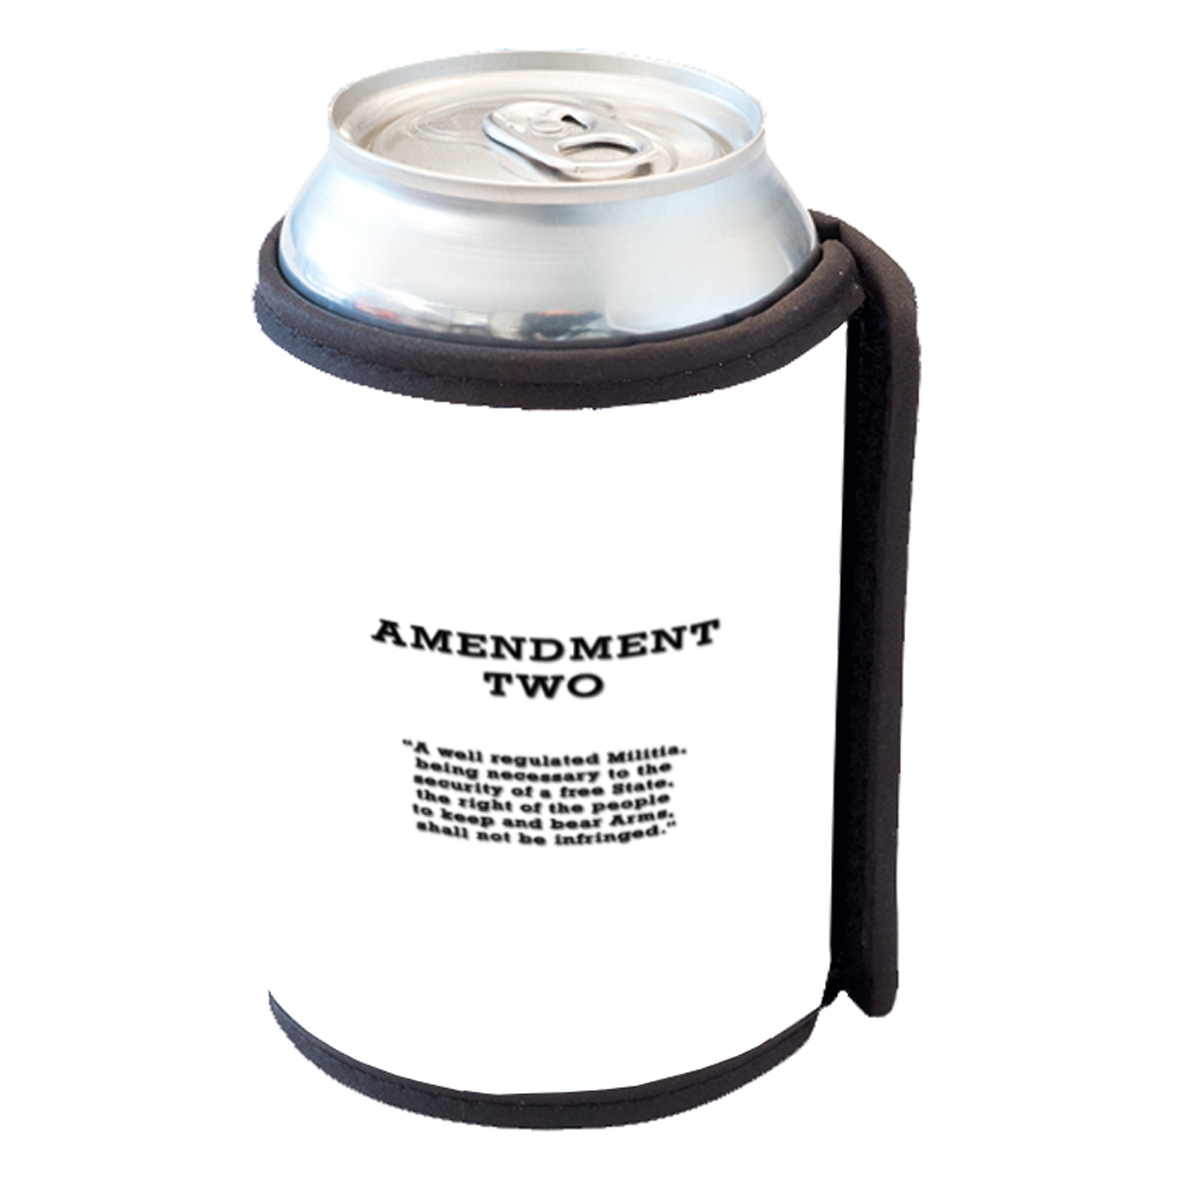 KuzmarK Insulated Drink Can Cooler Hugger - Amendment Two